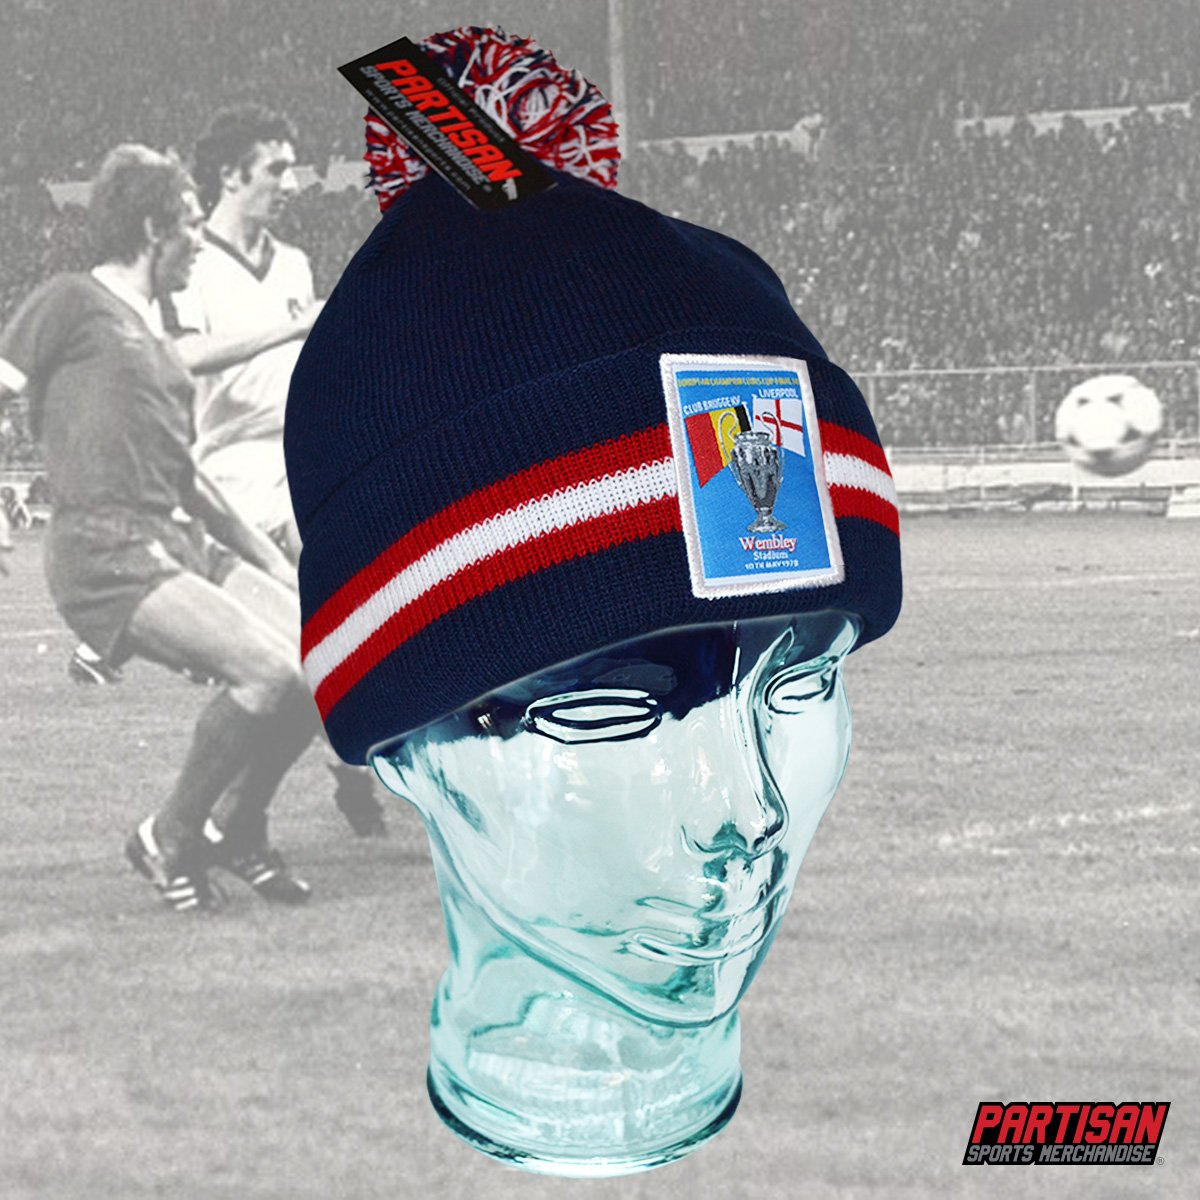 10043f9eab2 Liverpool 2 5  WEMBLEY78 European Cup inspired Bobble Hat by   Partisan Sports online at ...